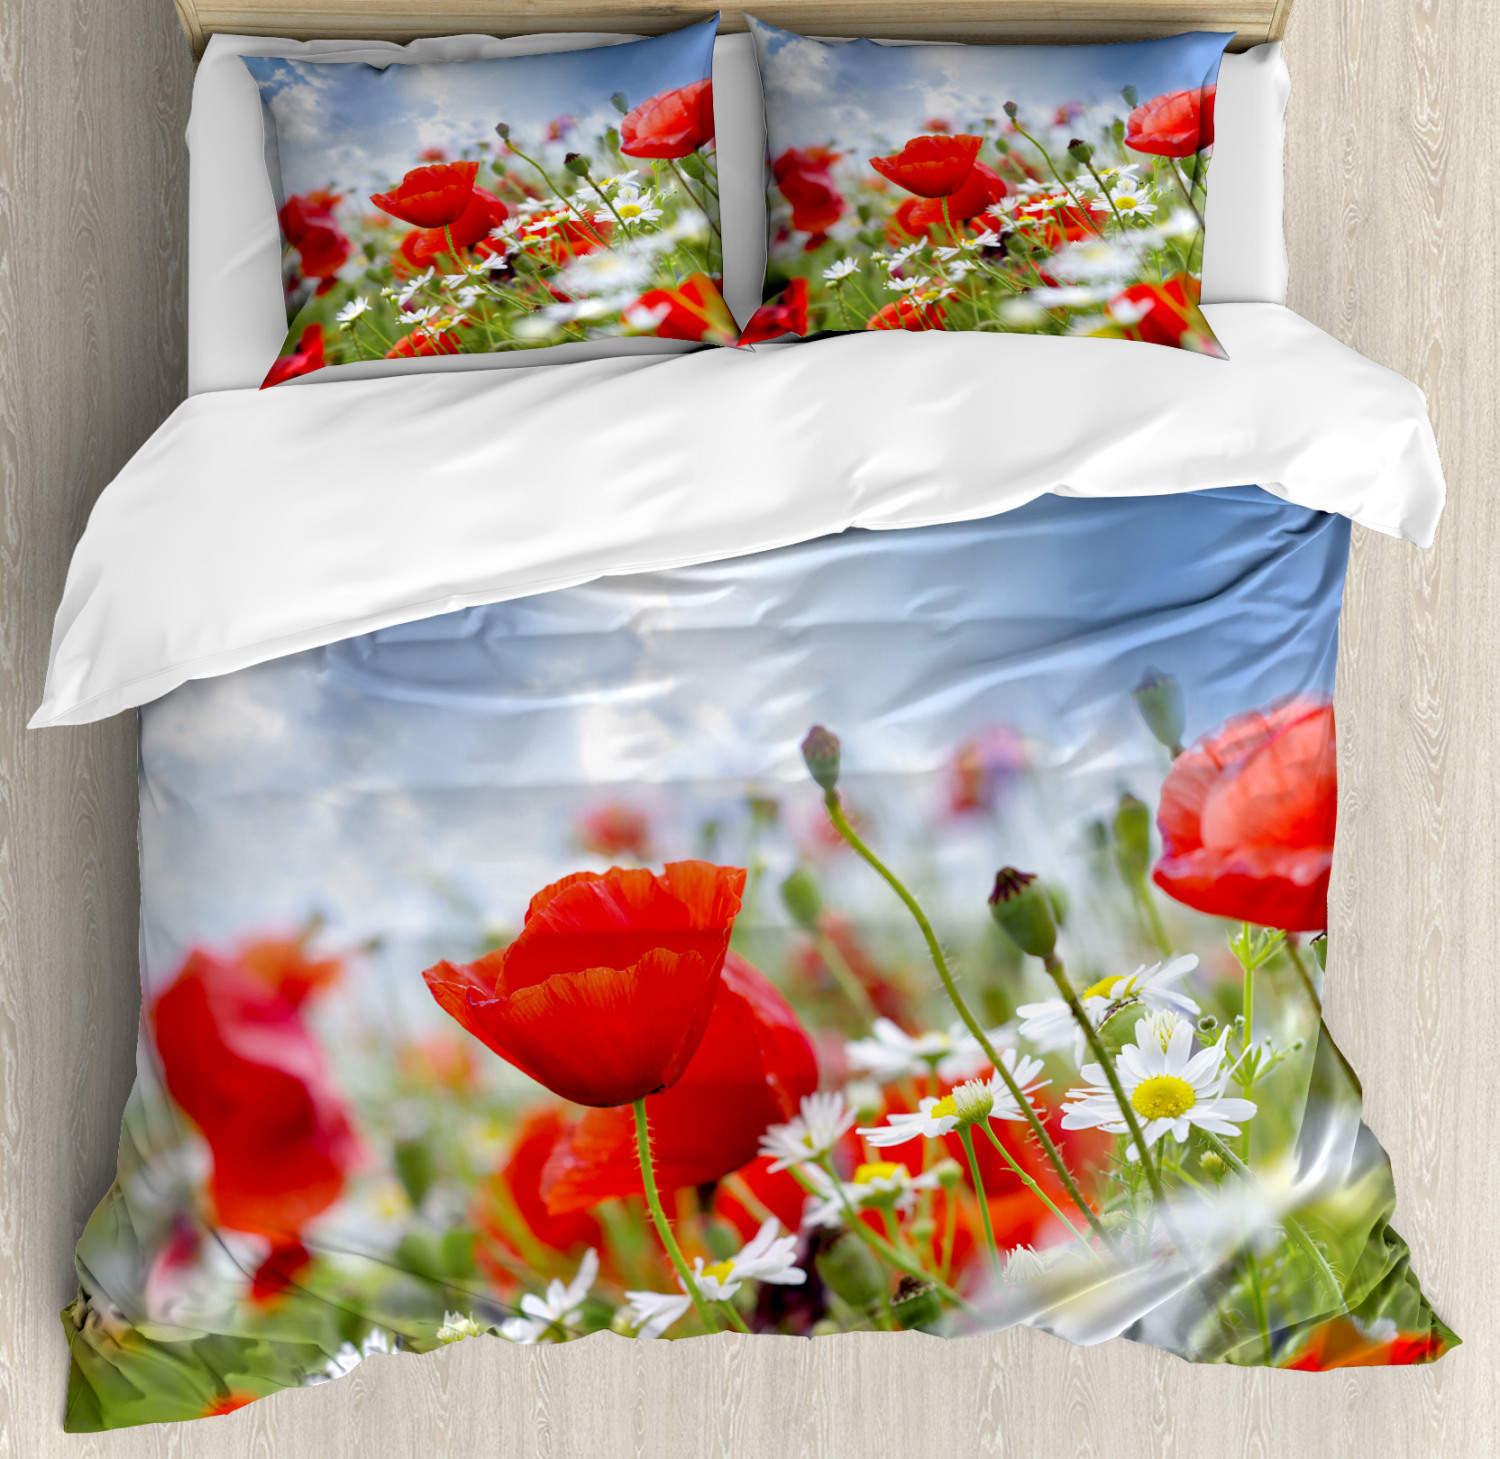 Country Duvet Cover Set with Pillow Shams Spring Meadow Print